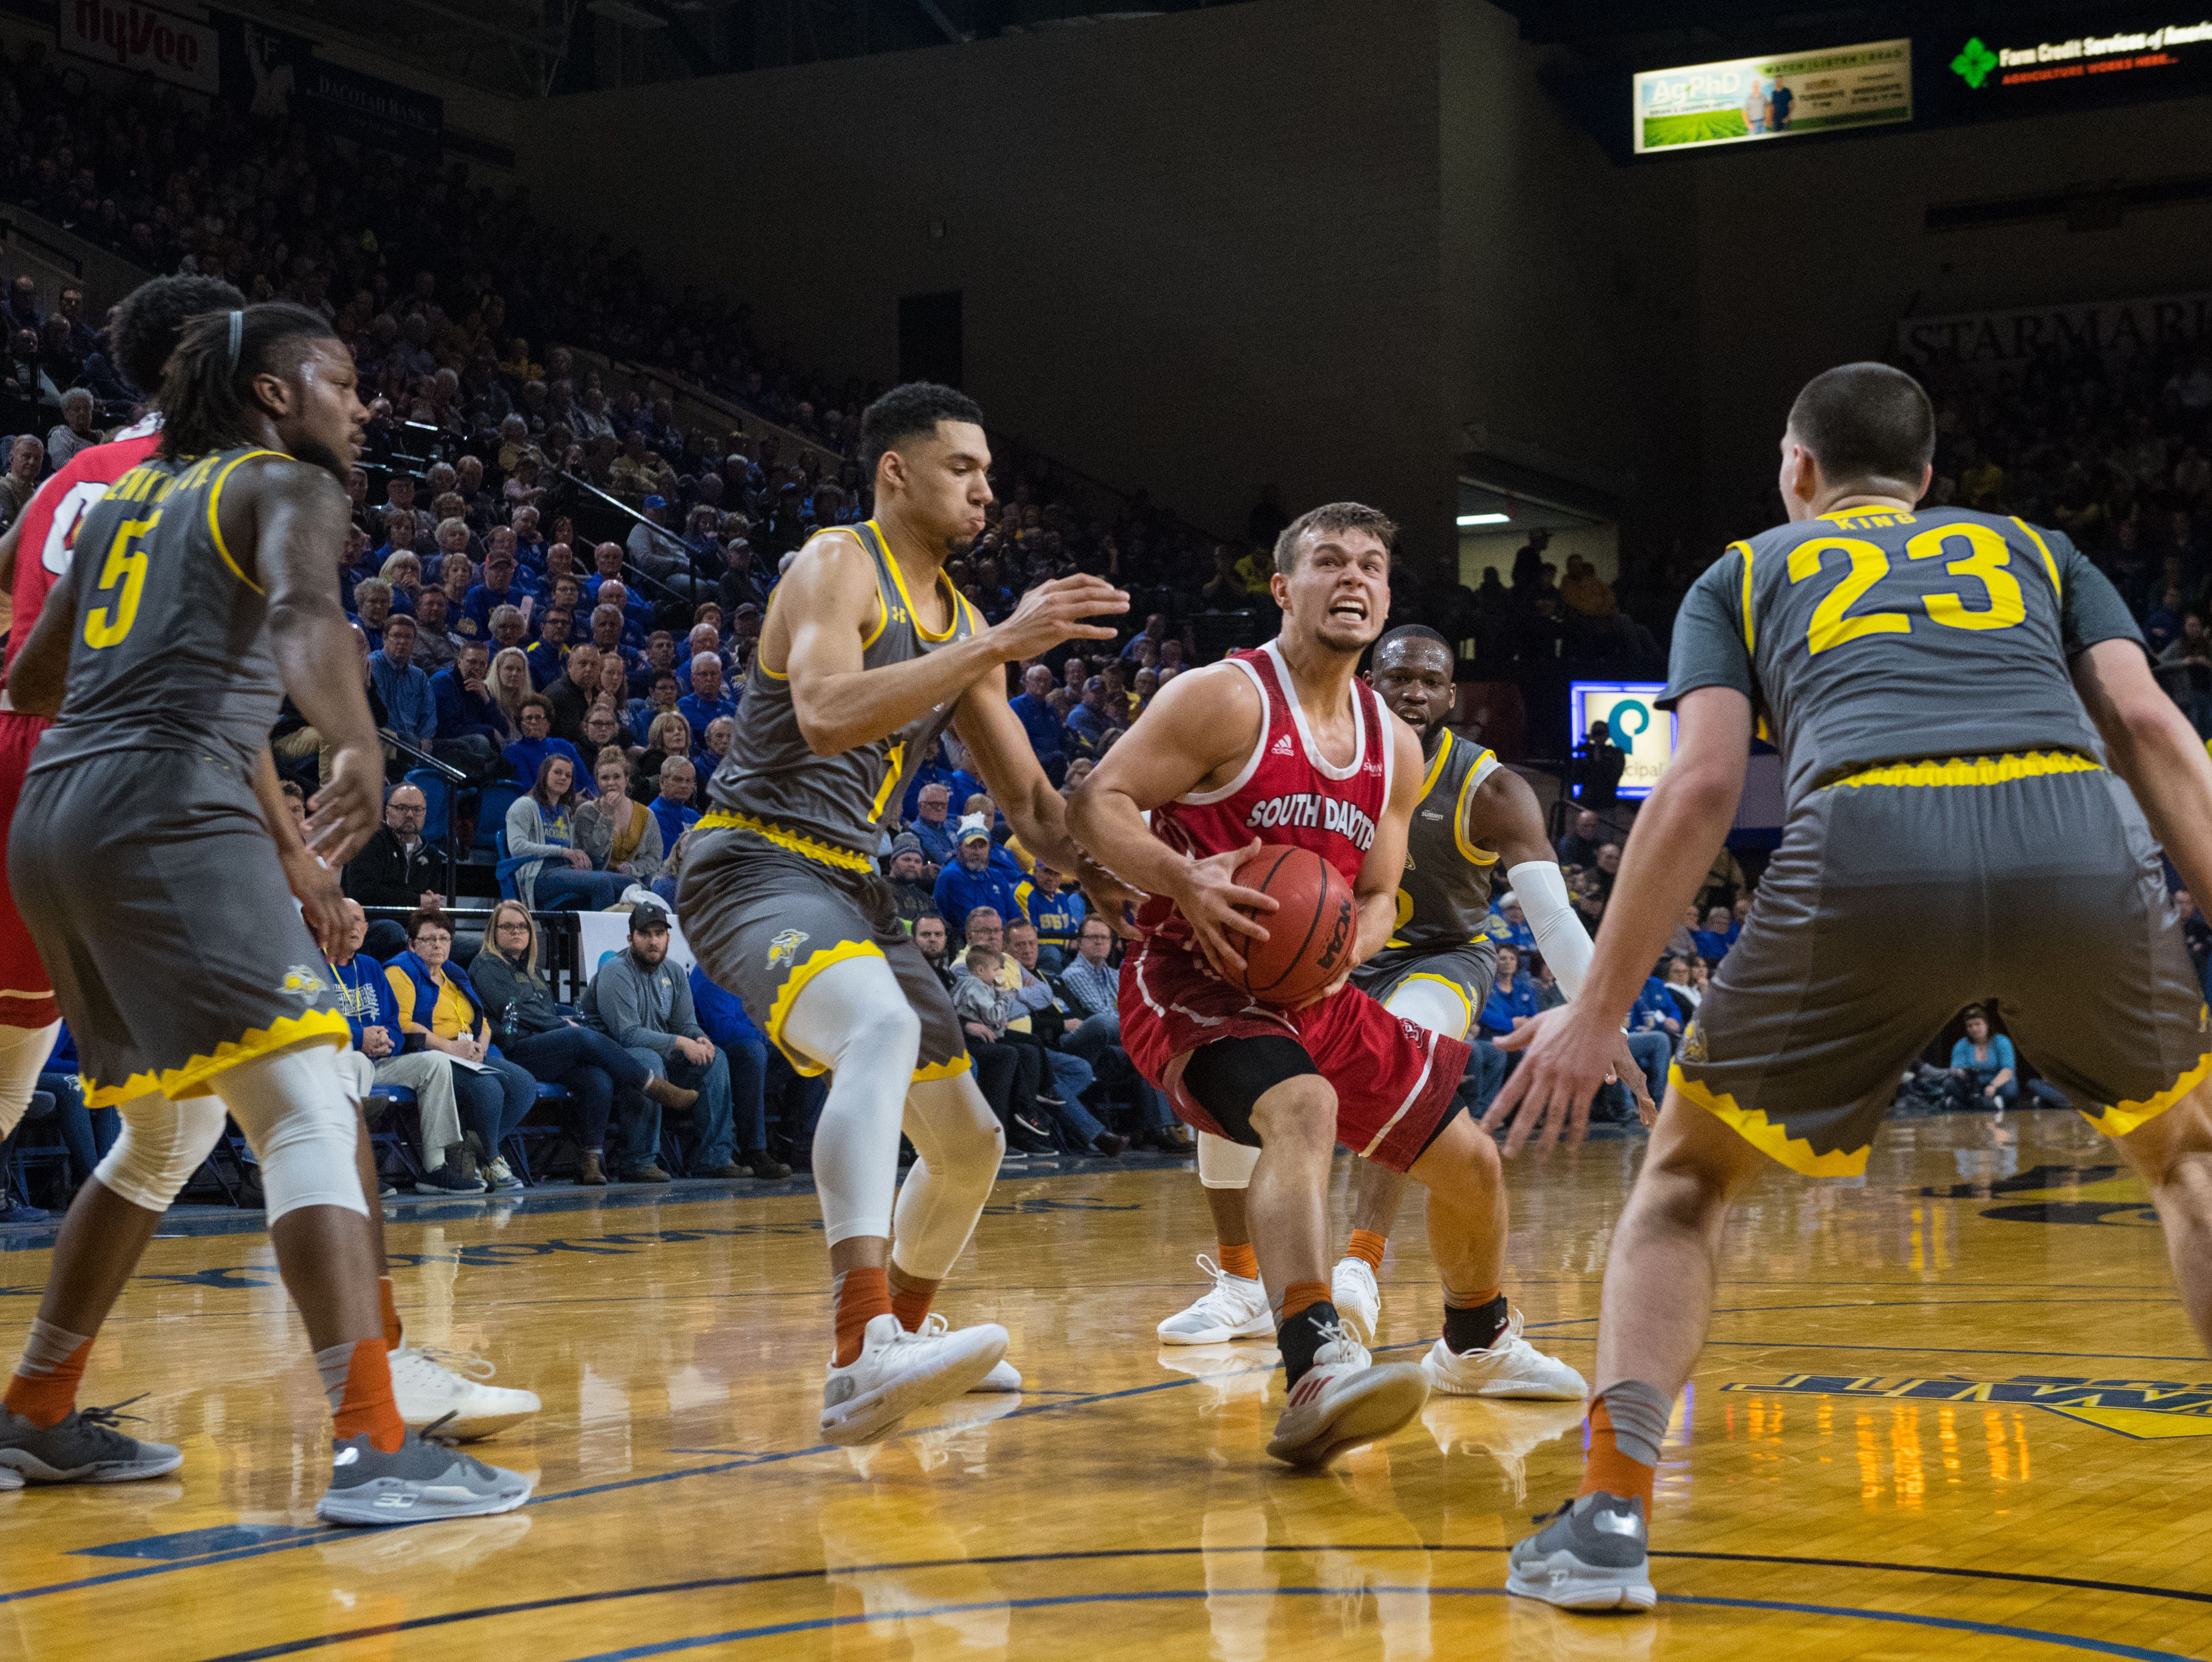 USD's Cody Kelley (10) dribbles the ball during a game against SDSU, Saturday, Feb. 23, 2019 in Brookings, S.D.